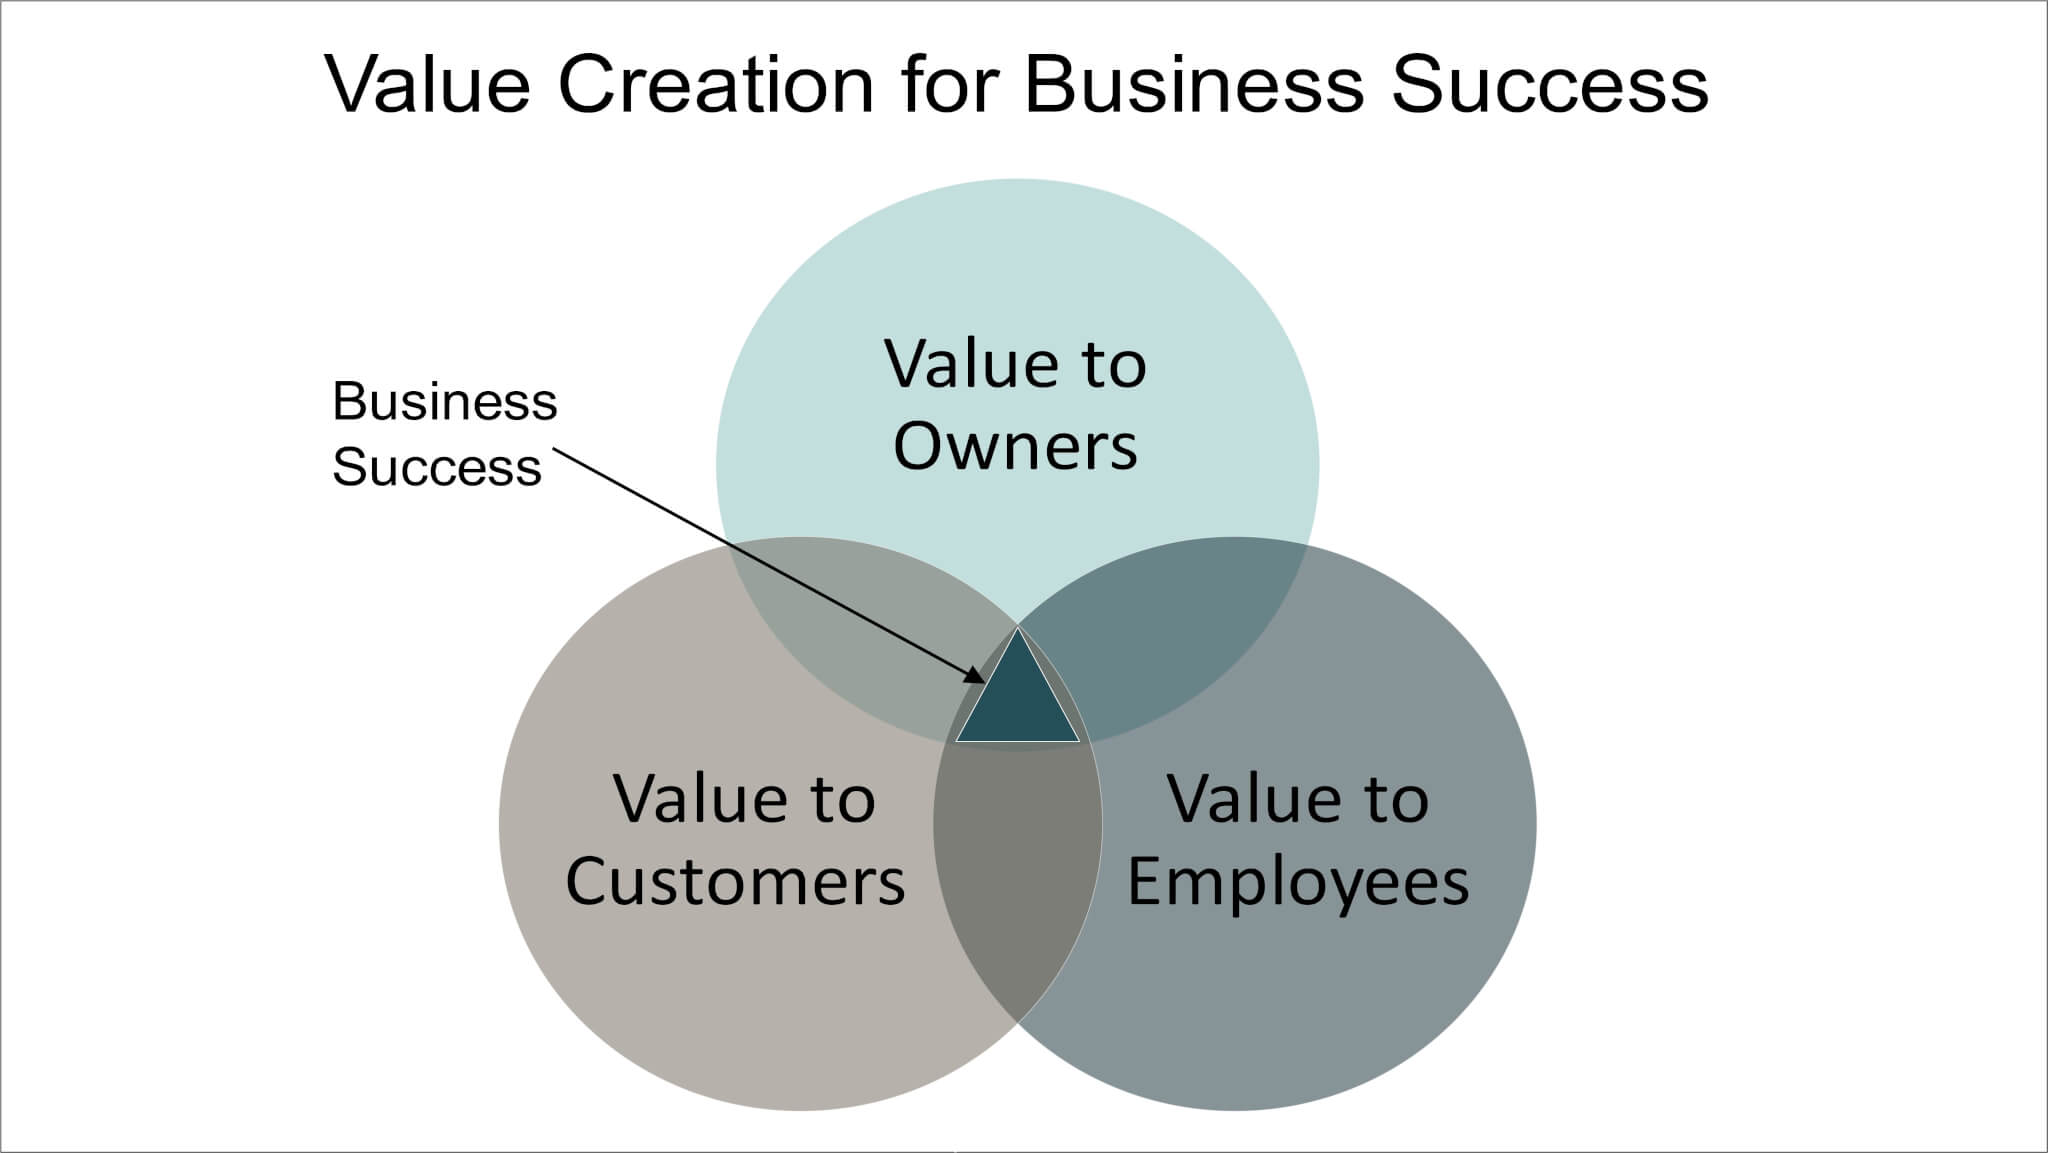 Value Creation for Business Venn Diagram: Overlap of value to owners, value to customers, and value to employees is business succcess